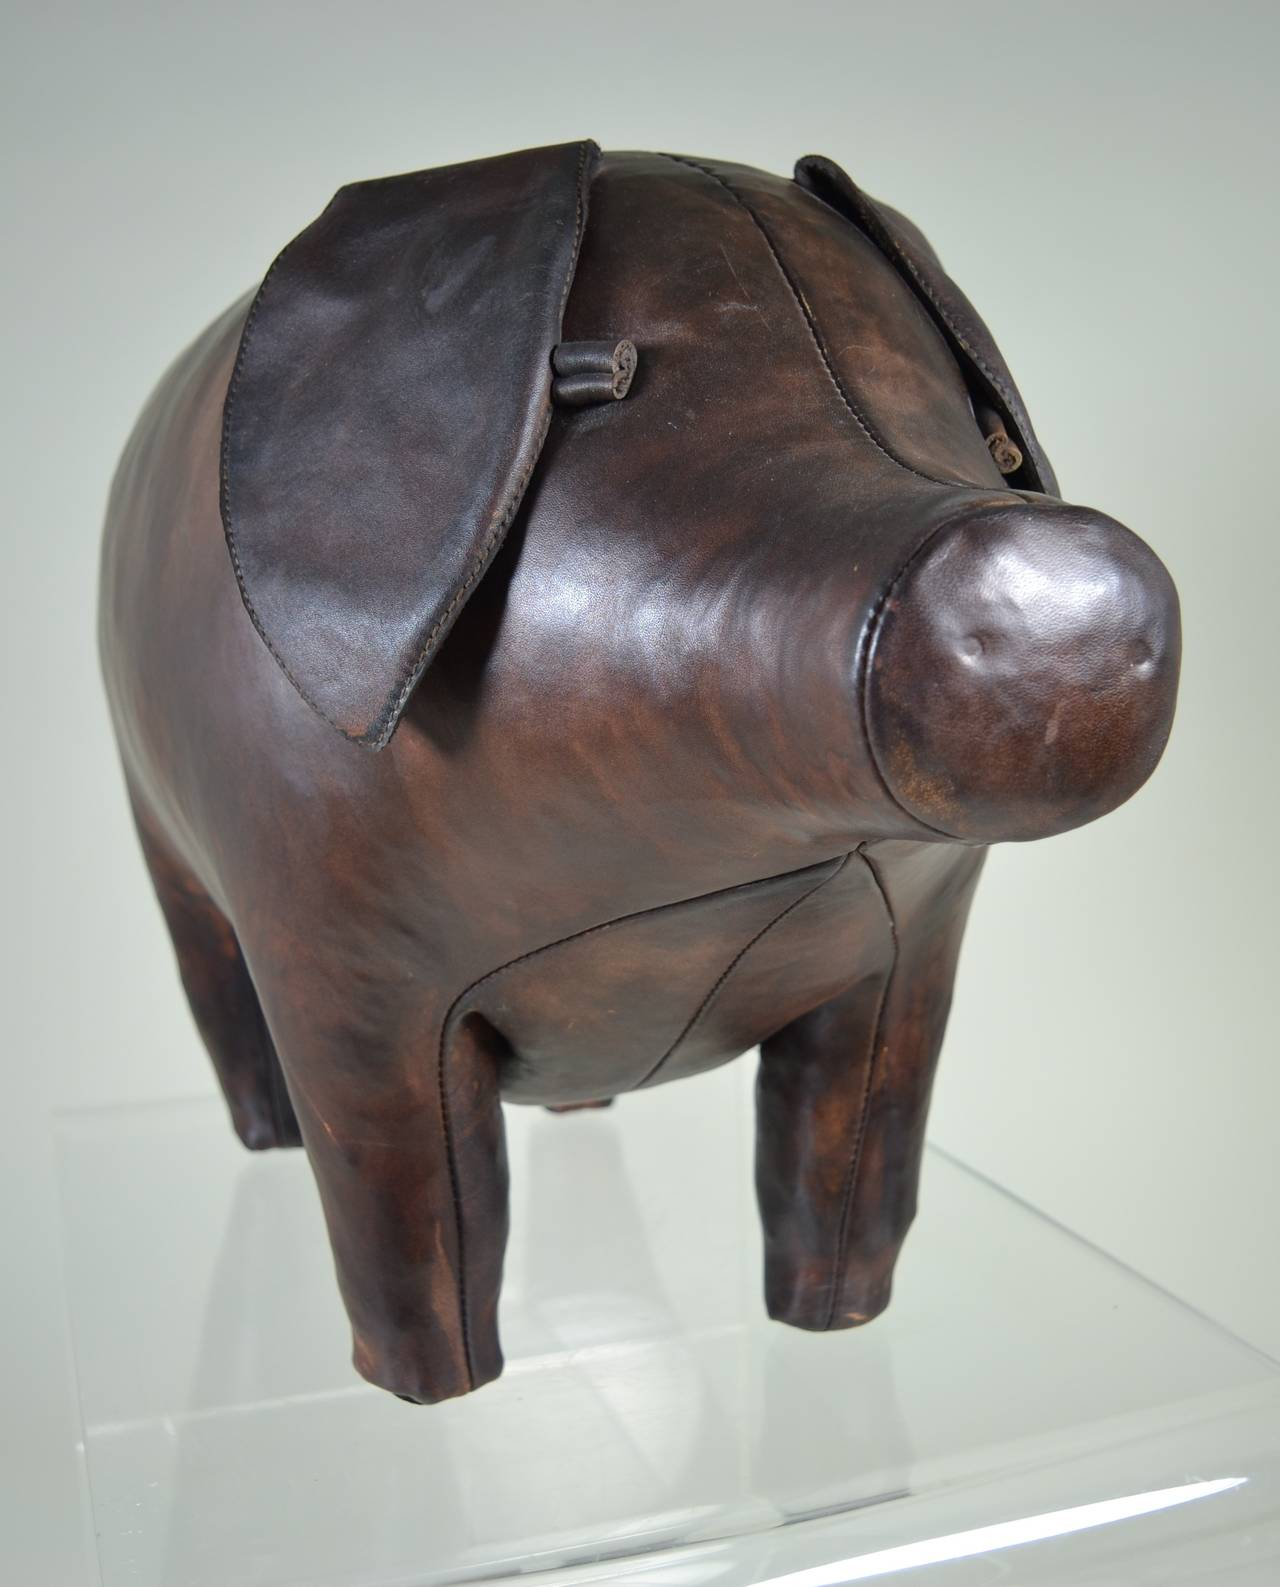 Leather Pig Stool Made By Omersa And Company For